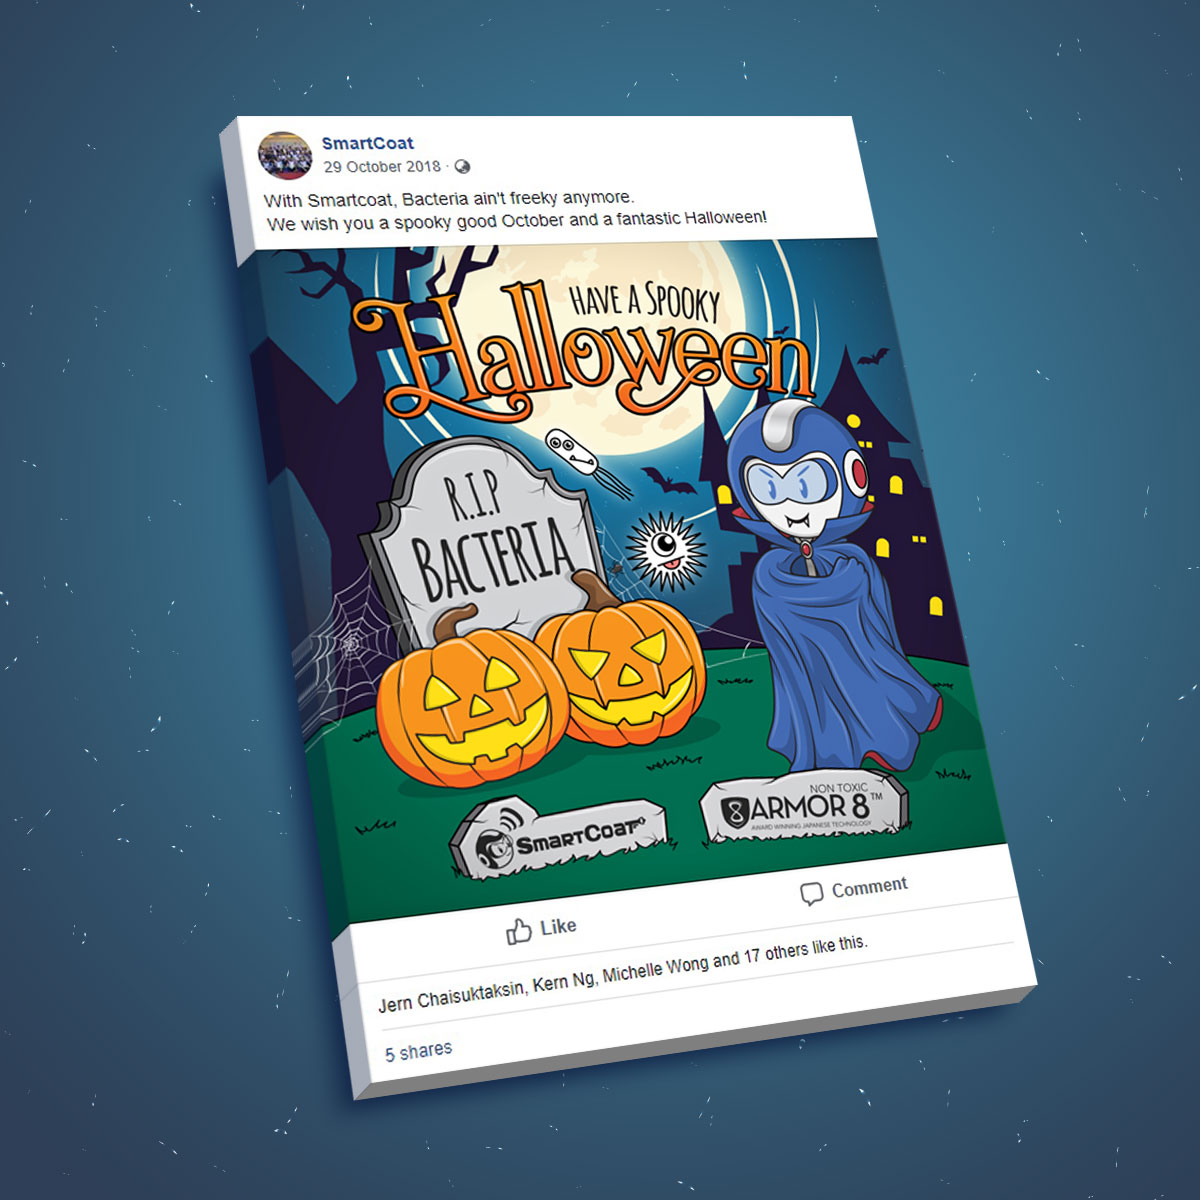 SmartCoat and Armor8 Have A Spooky Halloween 2018 Facebook Post Design 03